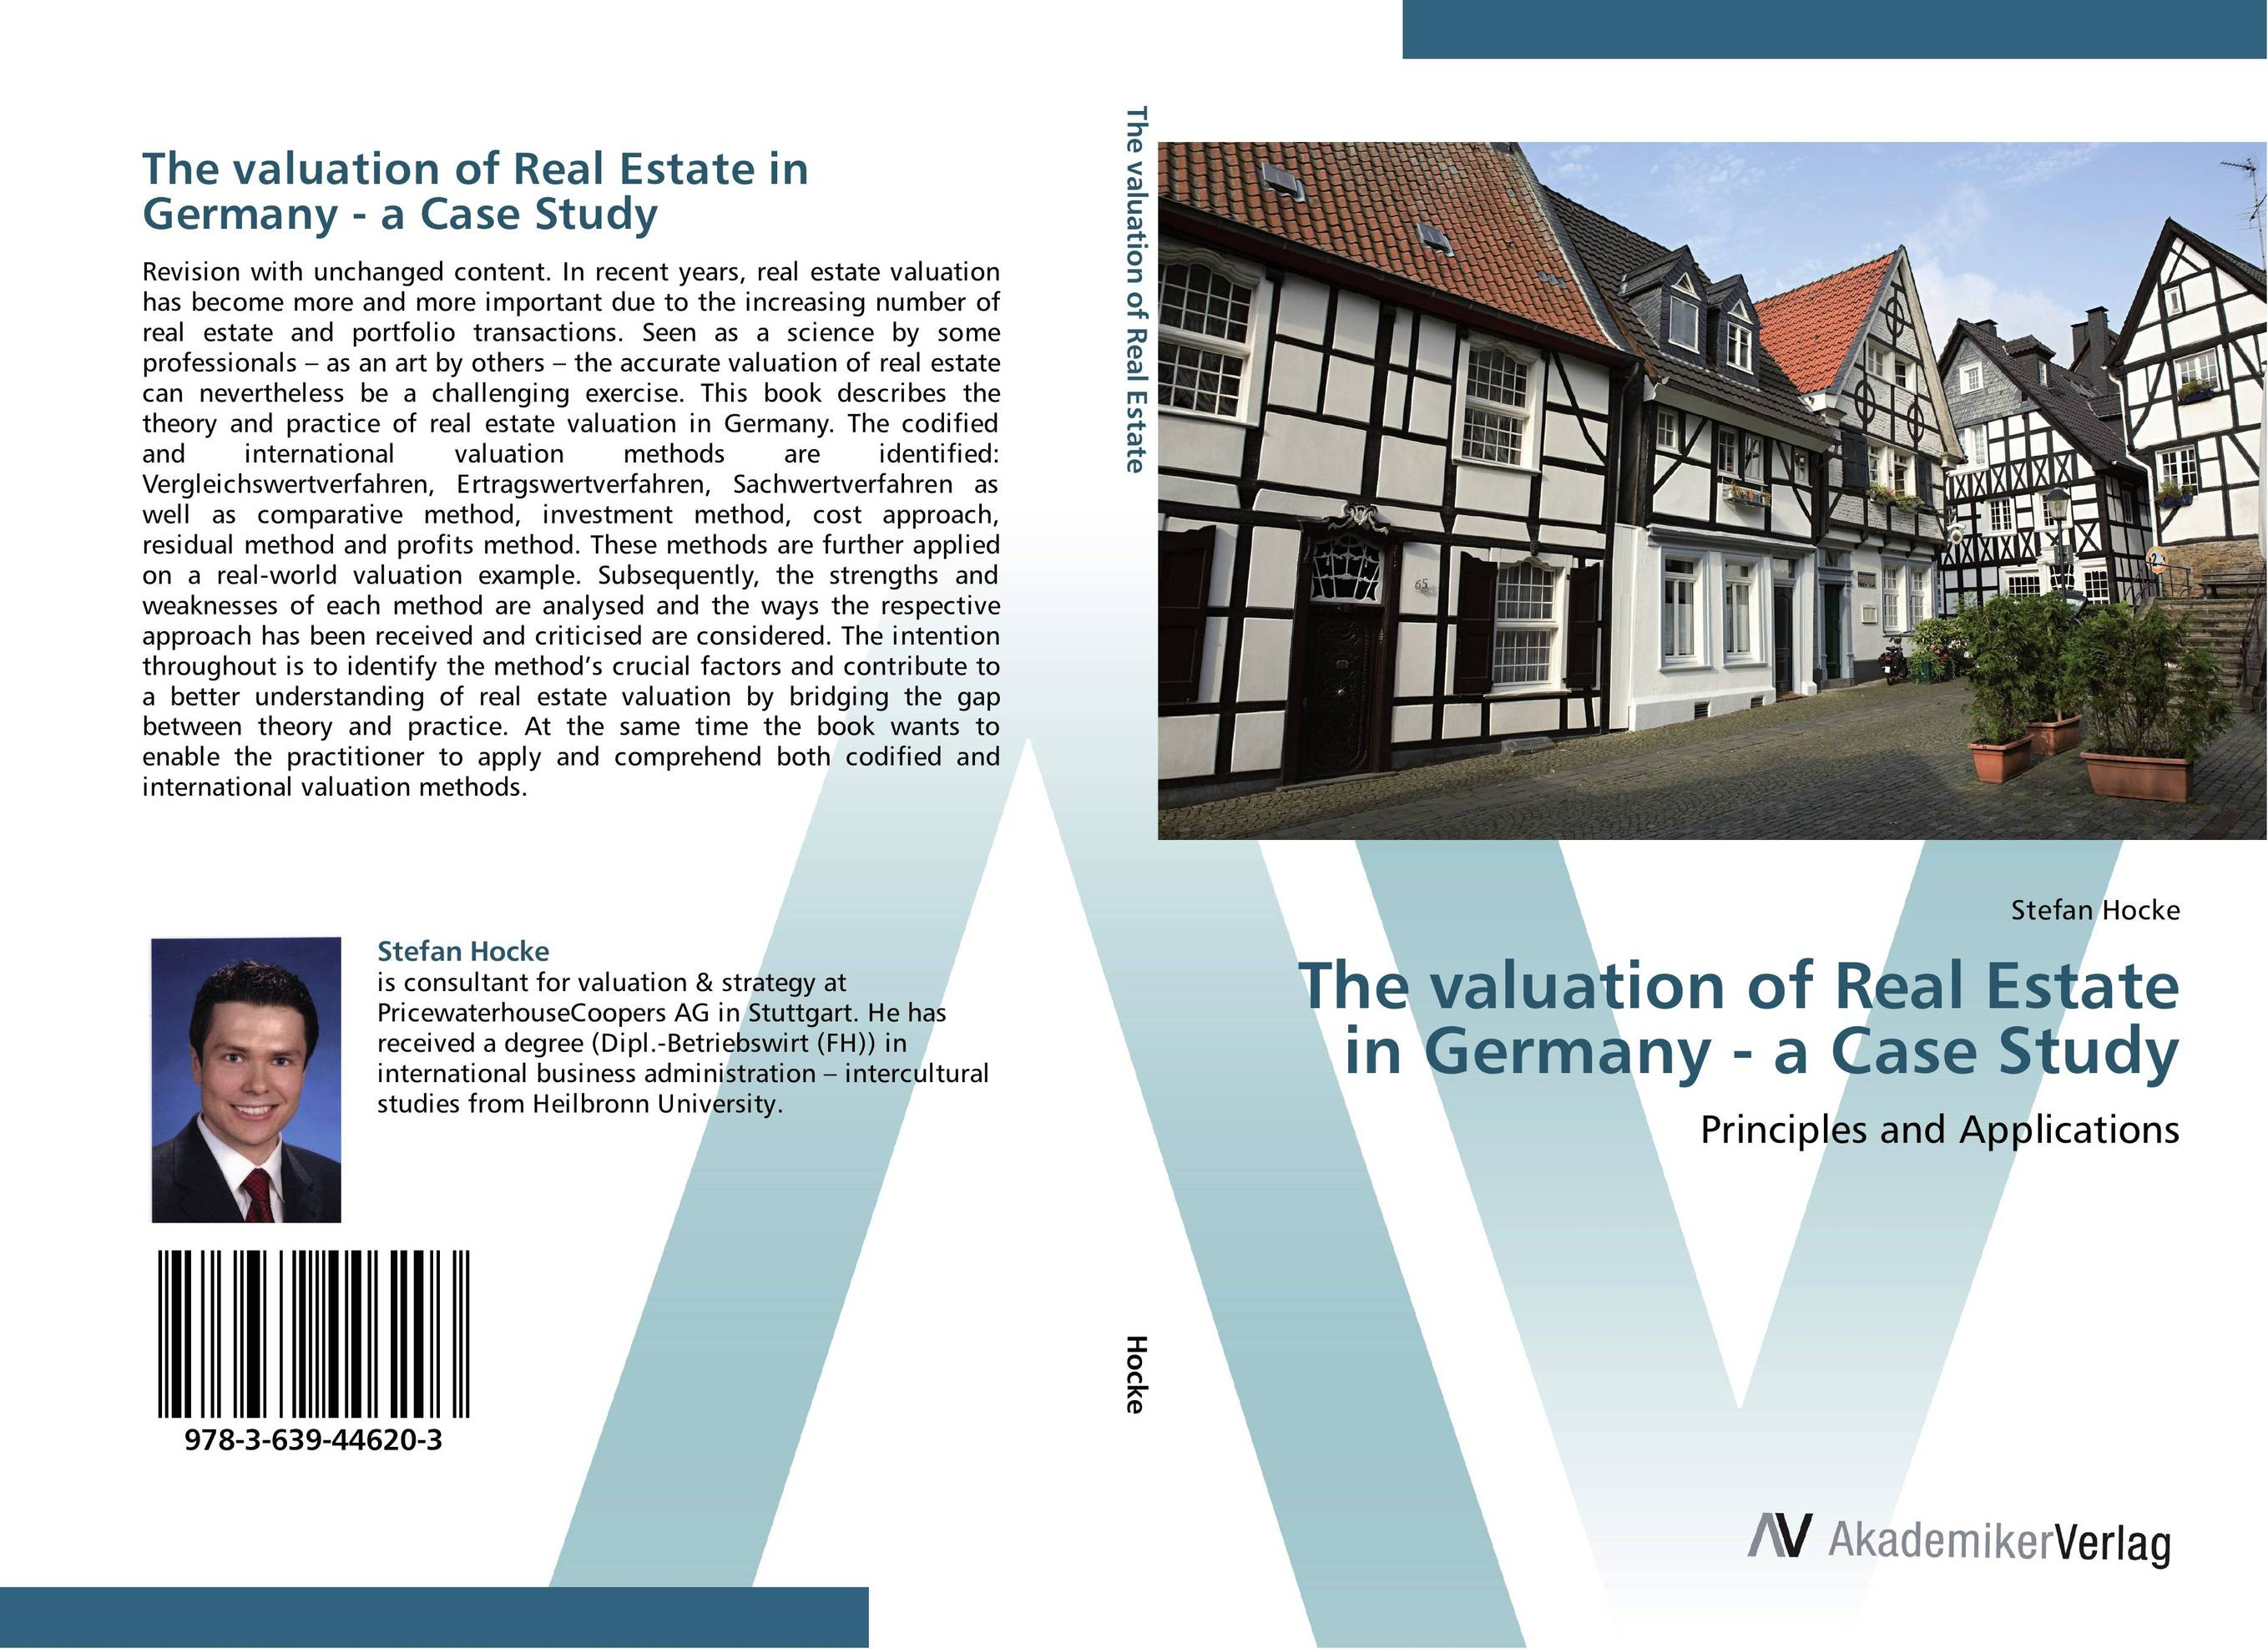 The valuation of Real Estate in Germany - a Case Study james lumley e a 5 magic paths to making a fortune in real estate